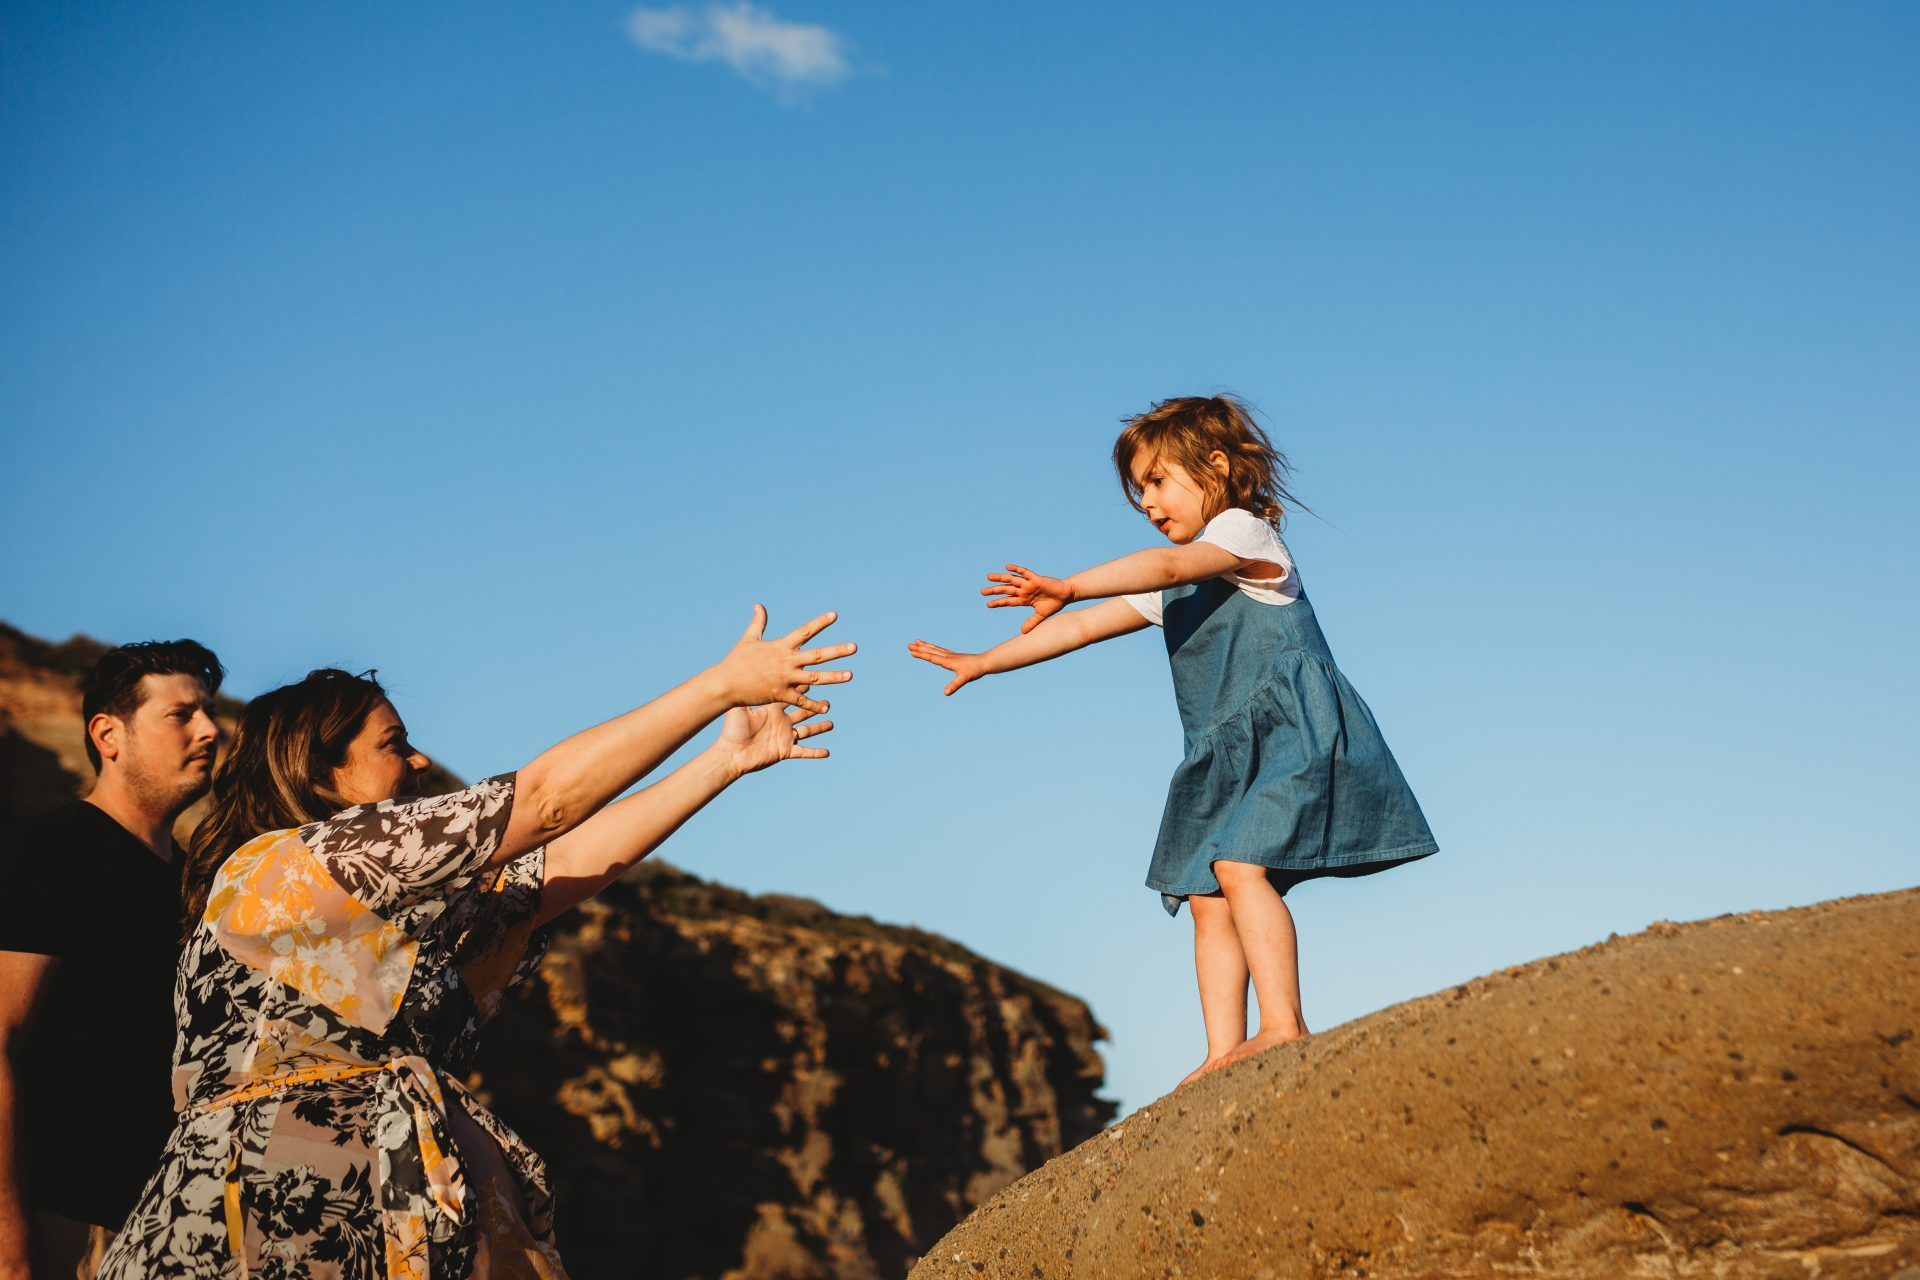 Little girl on a large rock, reaching out towards her mother who also has her arms reaching for her daughter